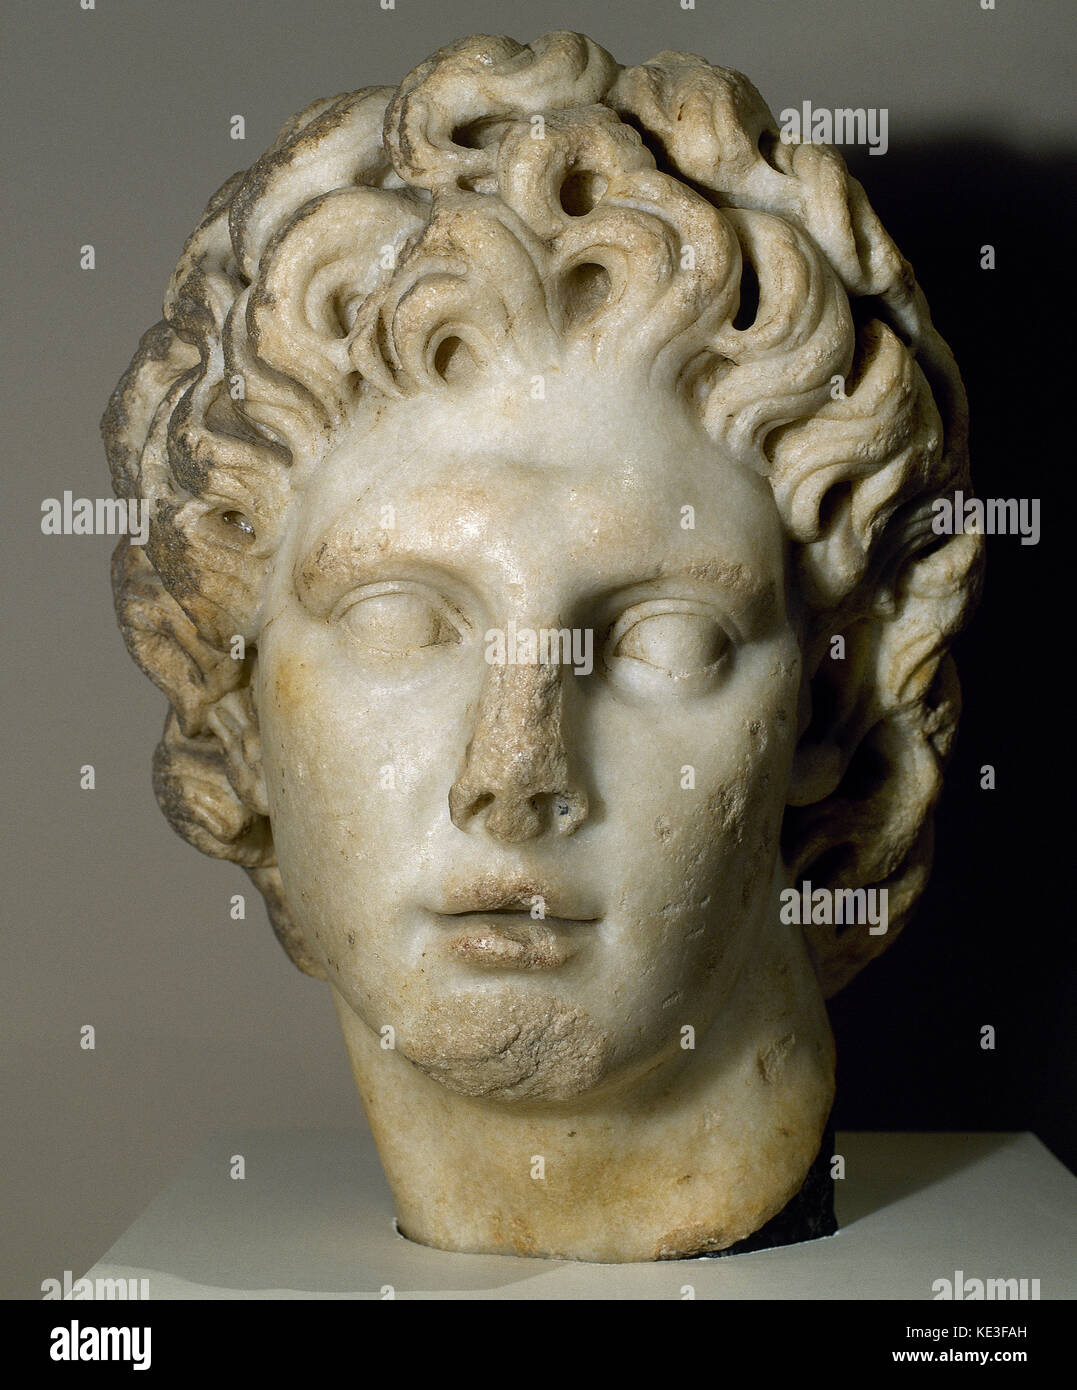 Alexander the Great king of Macedon (356-323 BC). Argead dynasty. 2nd century AD. Bust. Archeological Museum of - Stock Image